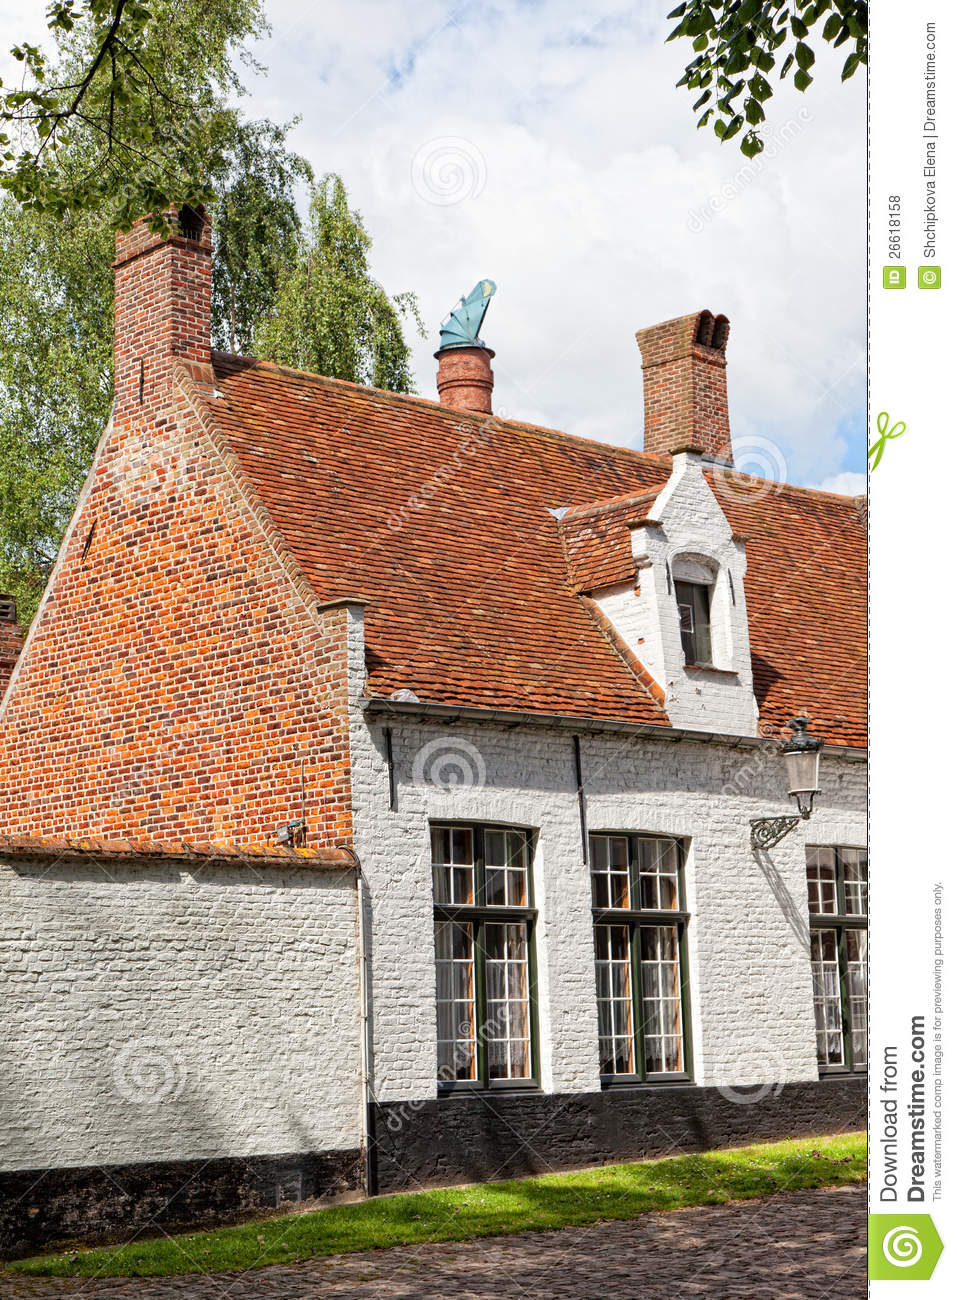 Bruges belgium royalty free stock photos image 26618158 - Small belgian houses brick ...